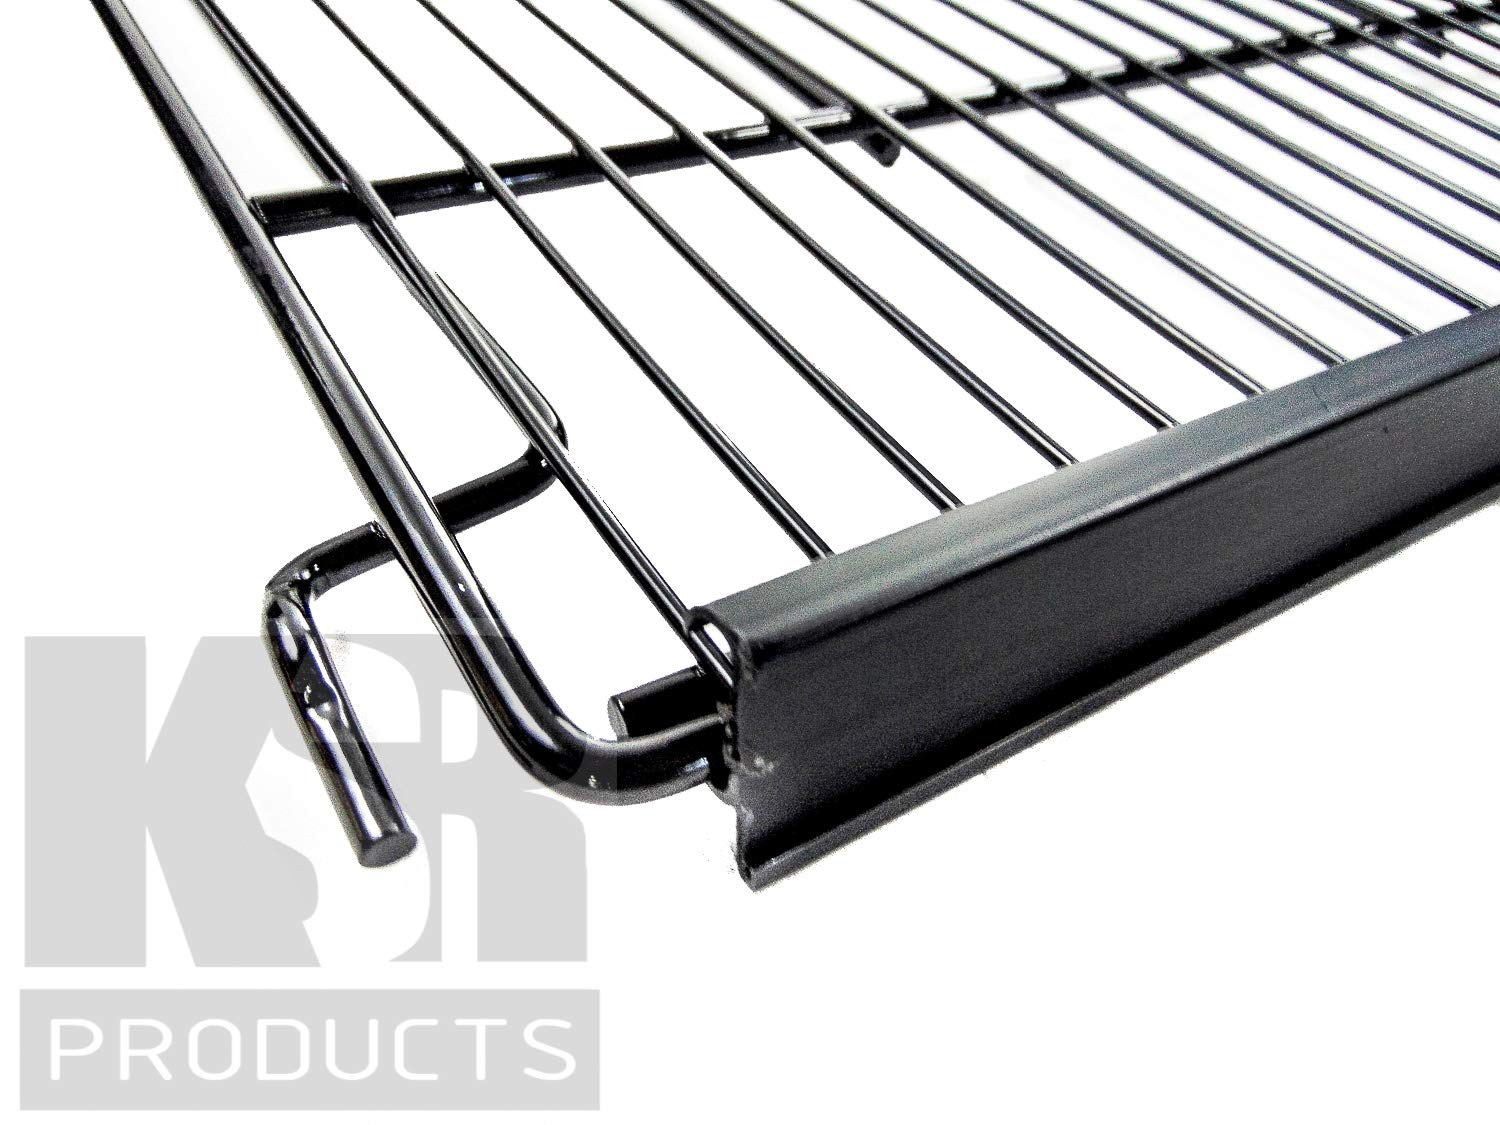 KSR 30″ x 27″ Commercial Refrigeration Wire Shelf for Behind Glass Door Shelving System, Includes Price Tag Molding; Multi Position, Powder Coated, and NSF Approved (Black)